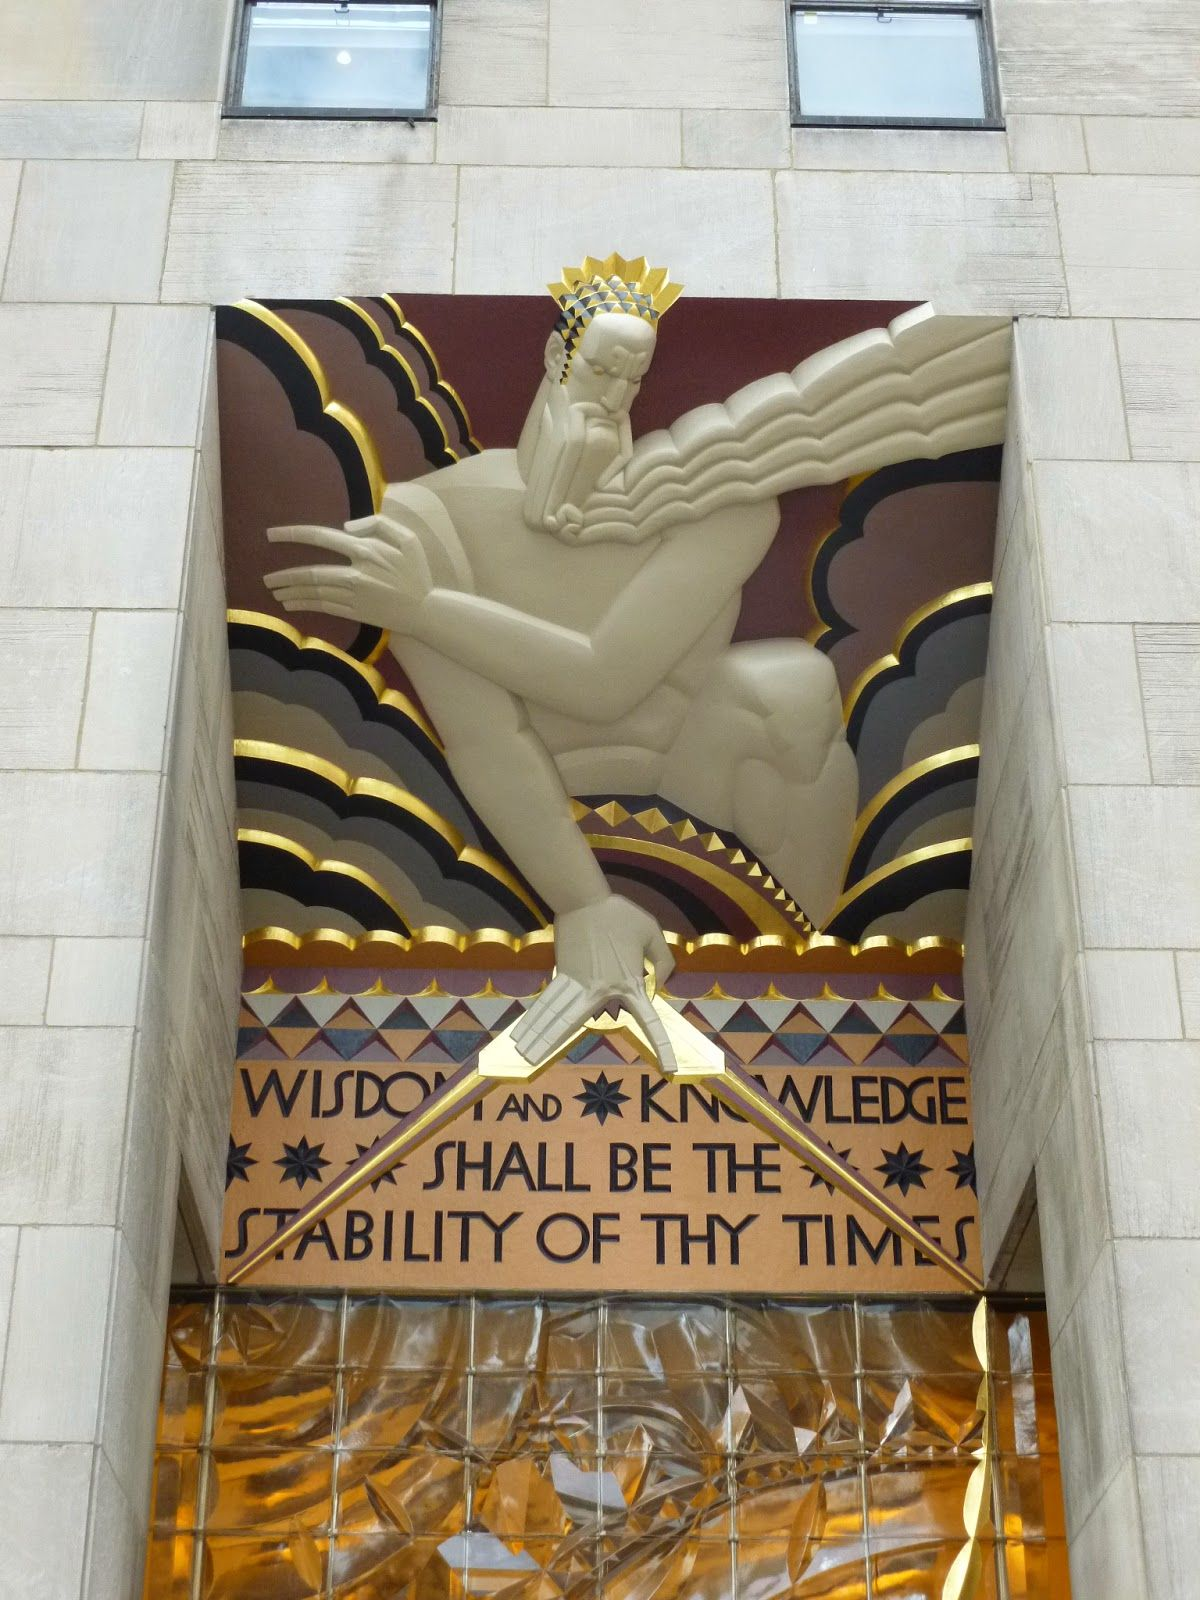 Art Deco Wisdom A Voice From The Clouds By Lee Oscar Lawrie 30 Rockefeller Plaza Ny Ny Art Deco Buildings Art Deco Architecture Art Deco Period